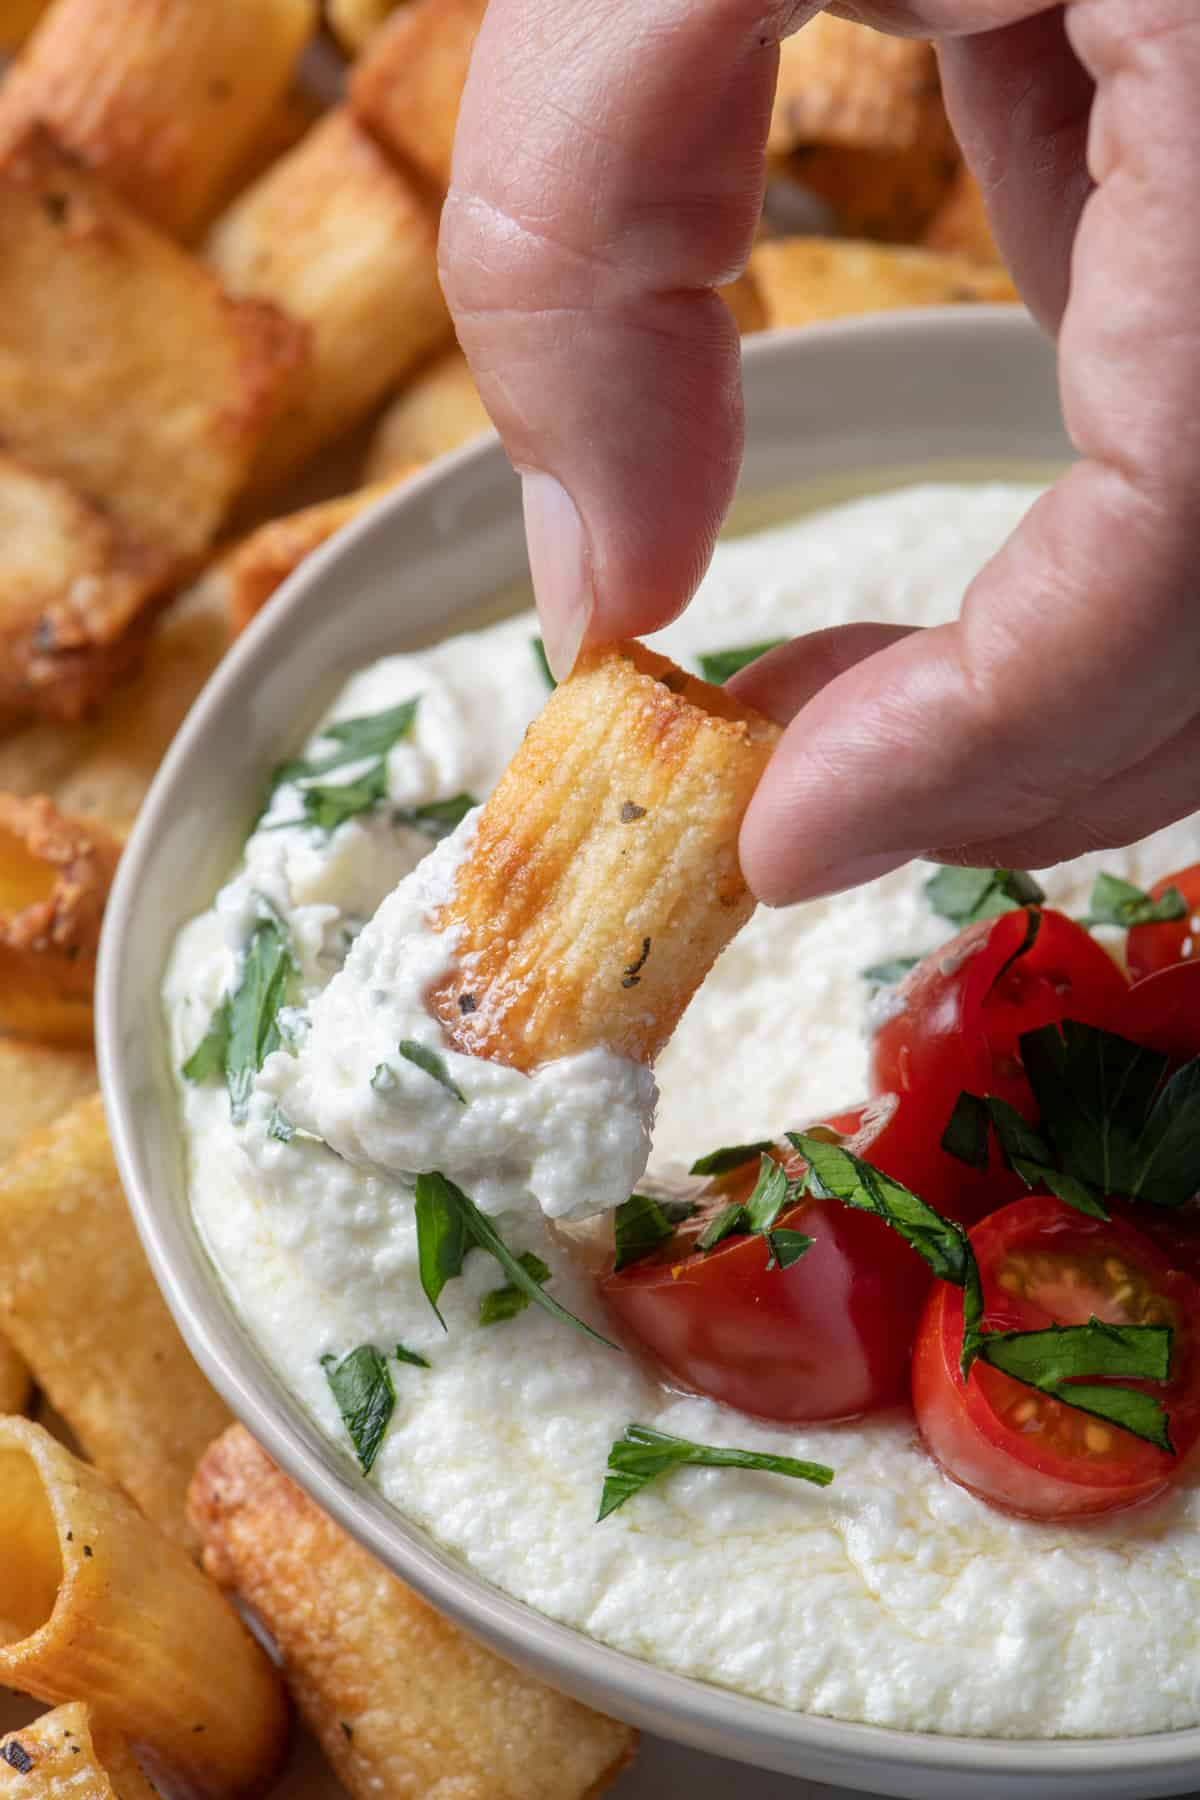 Pasta chip dipping into whipped feta dip